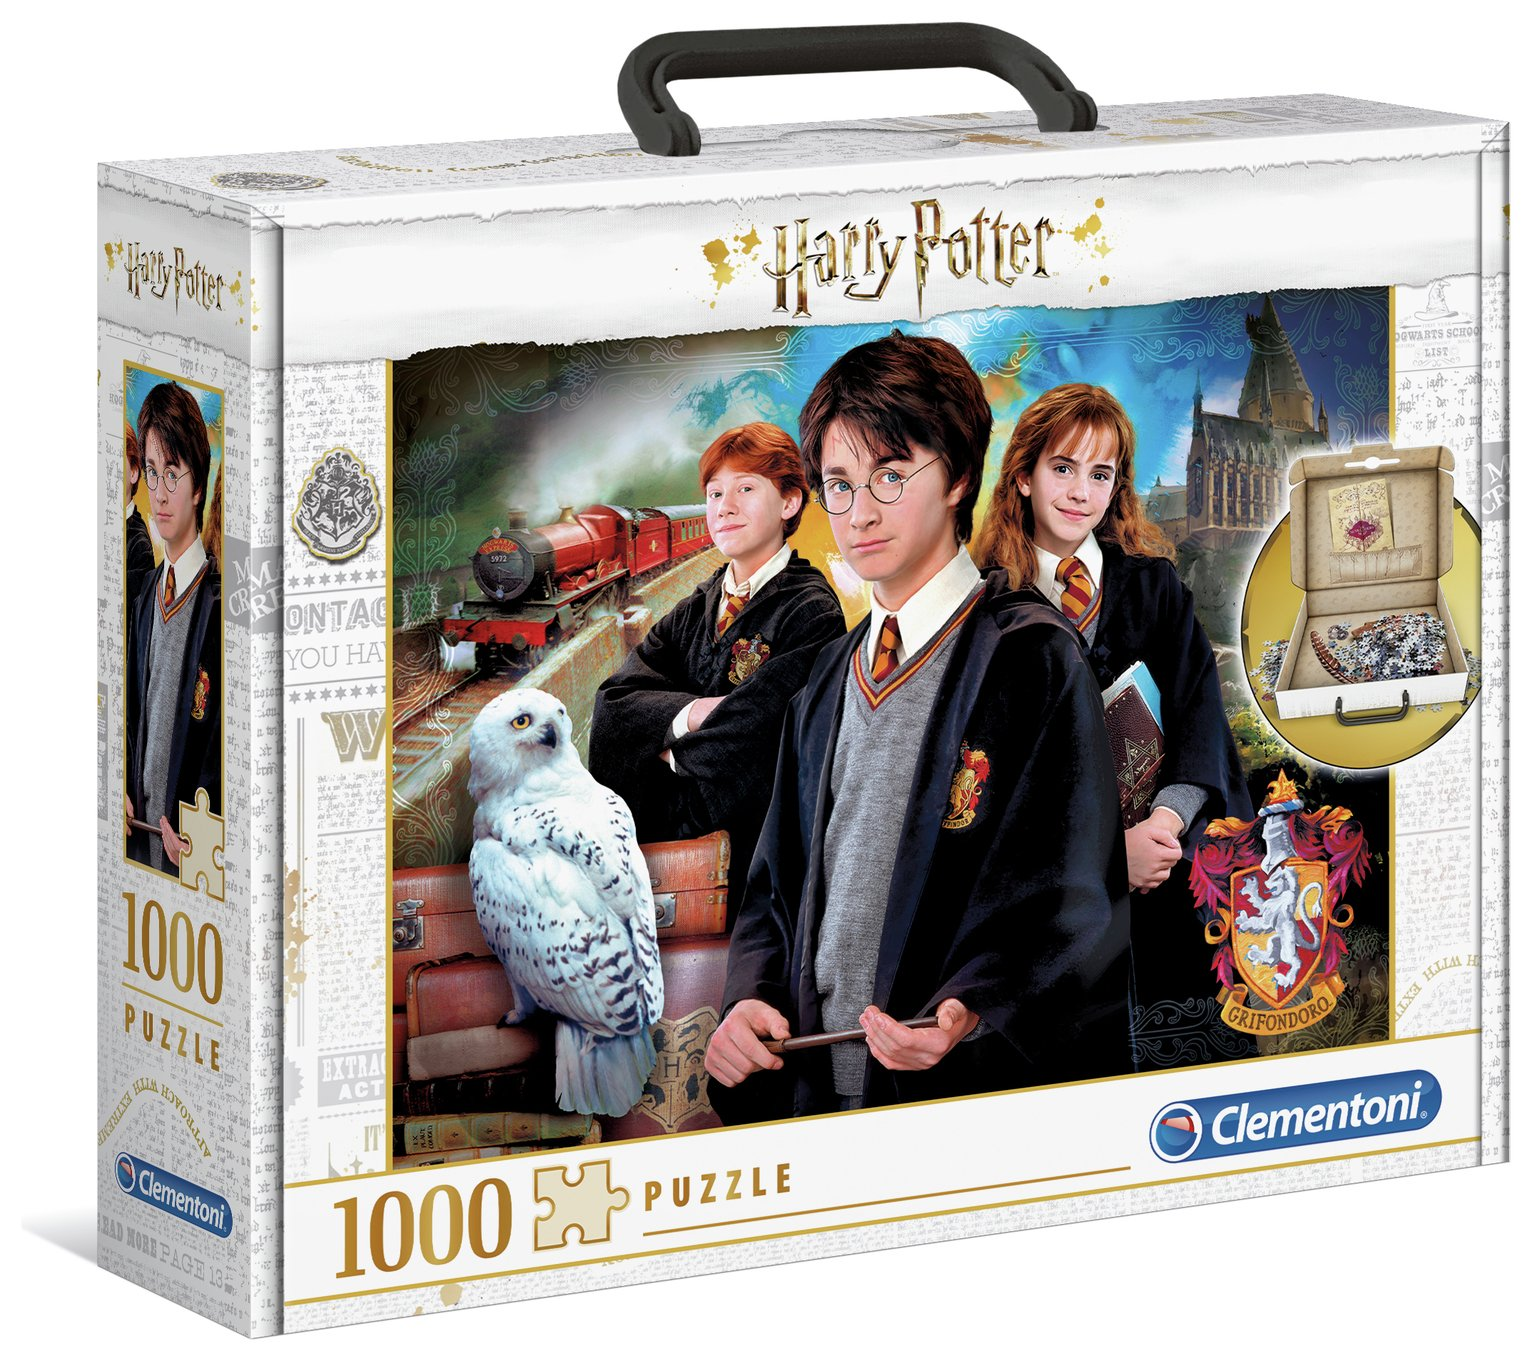 harry potter 1000 piece jigsaw puzzle